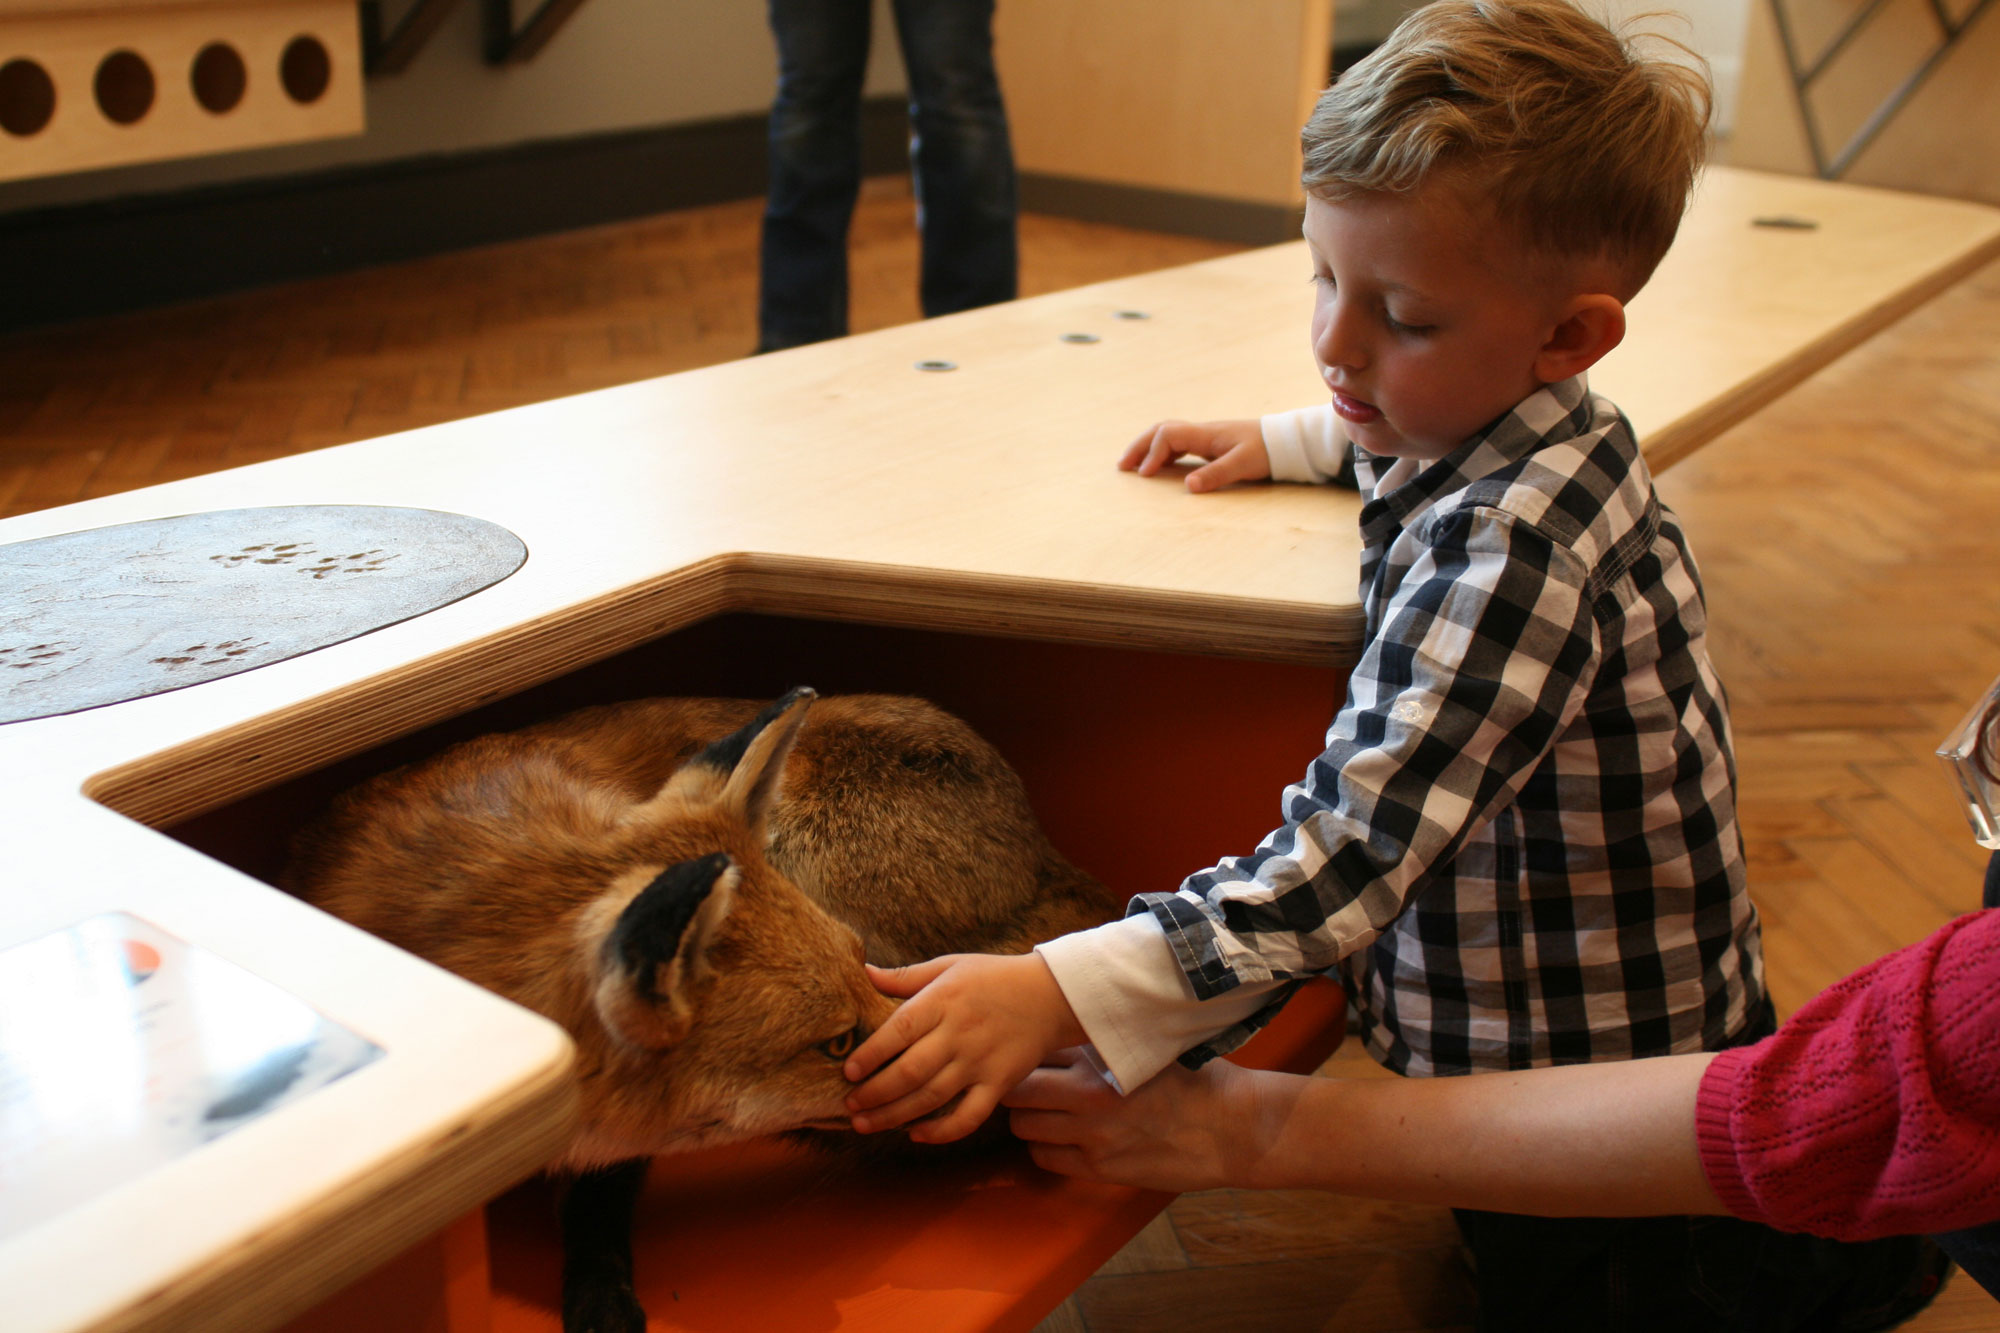 A boy is touching a taxidermy foxes nose, and an adult hand is reaching past them to join in. They are next to a wooden bench